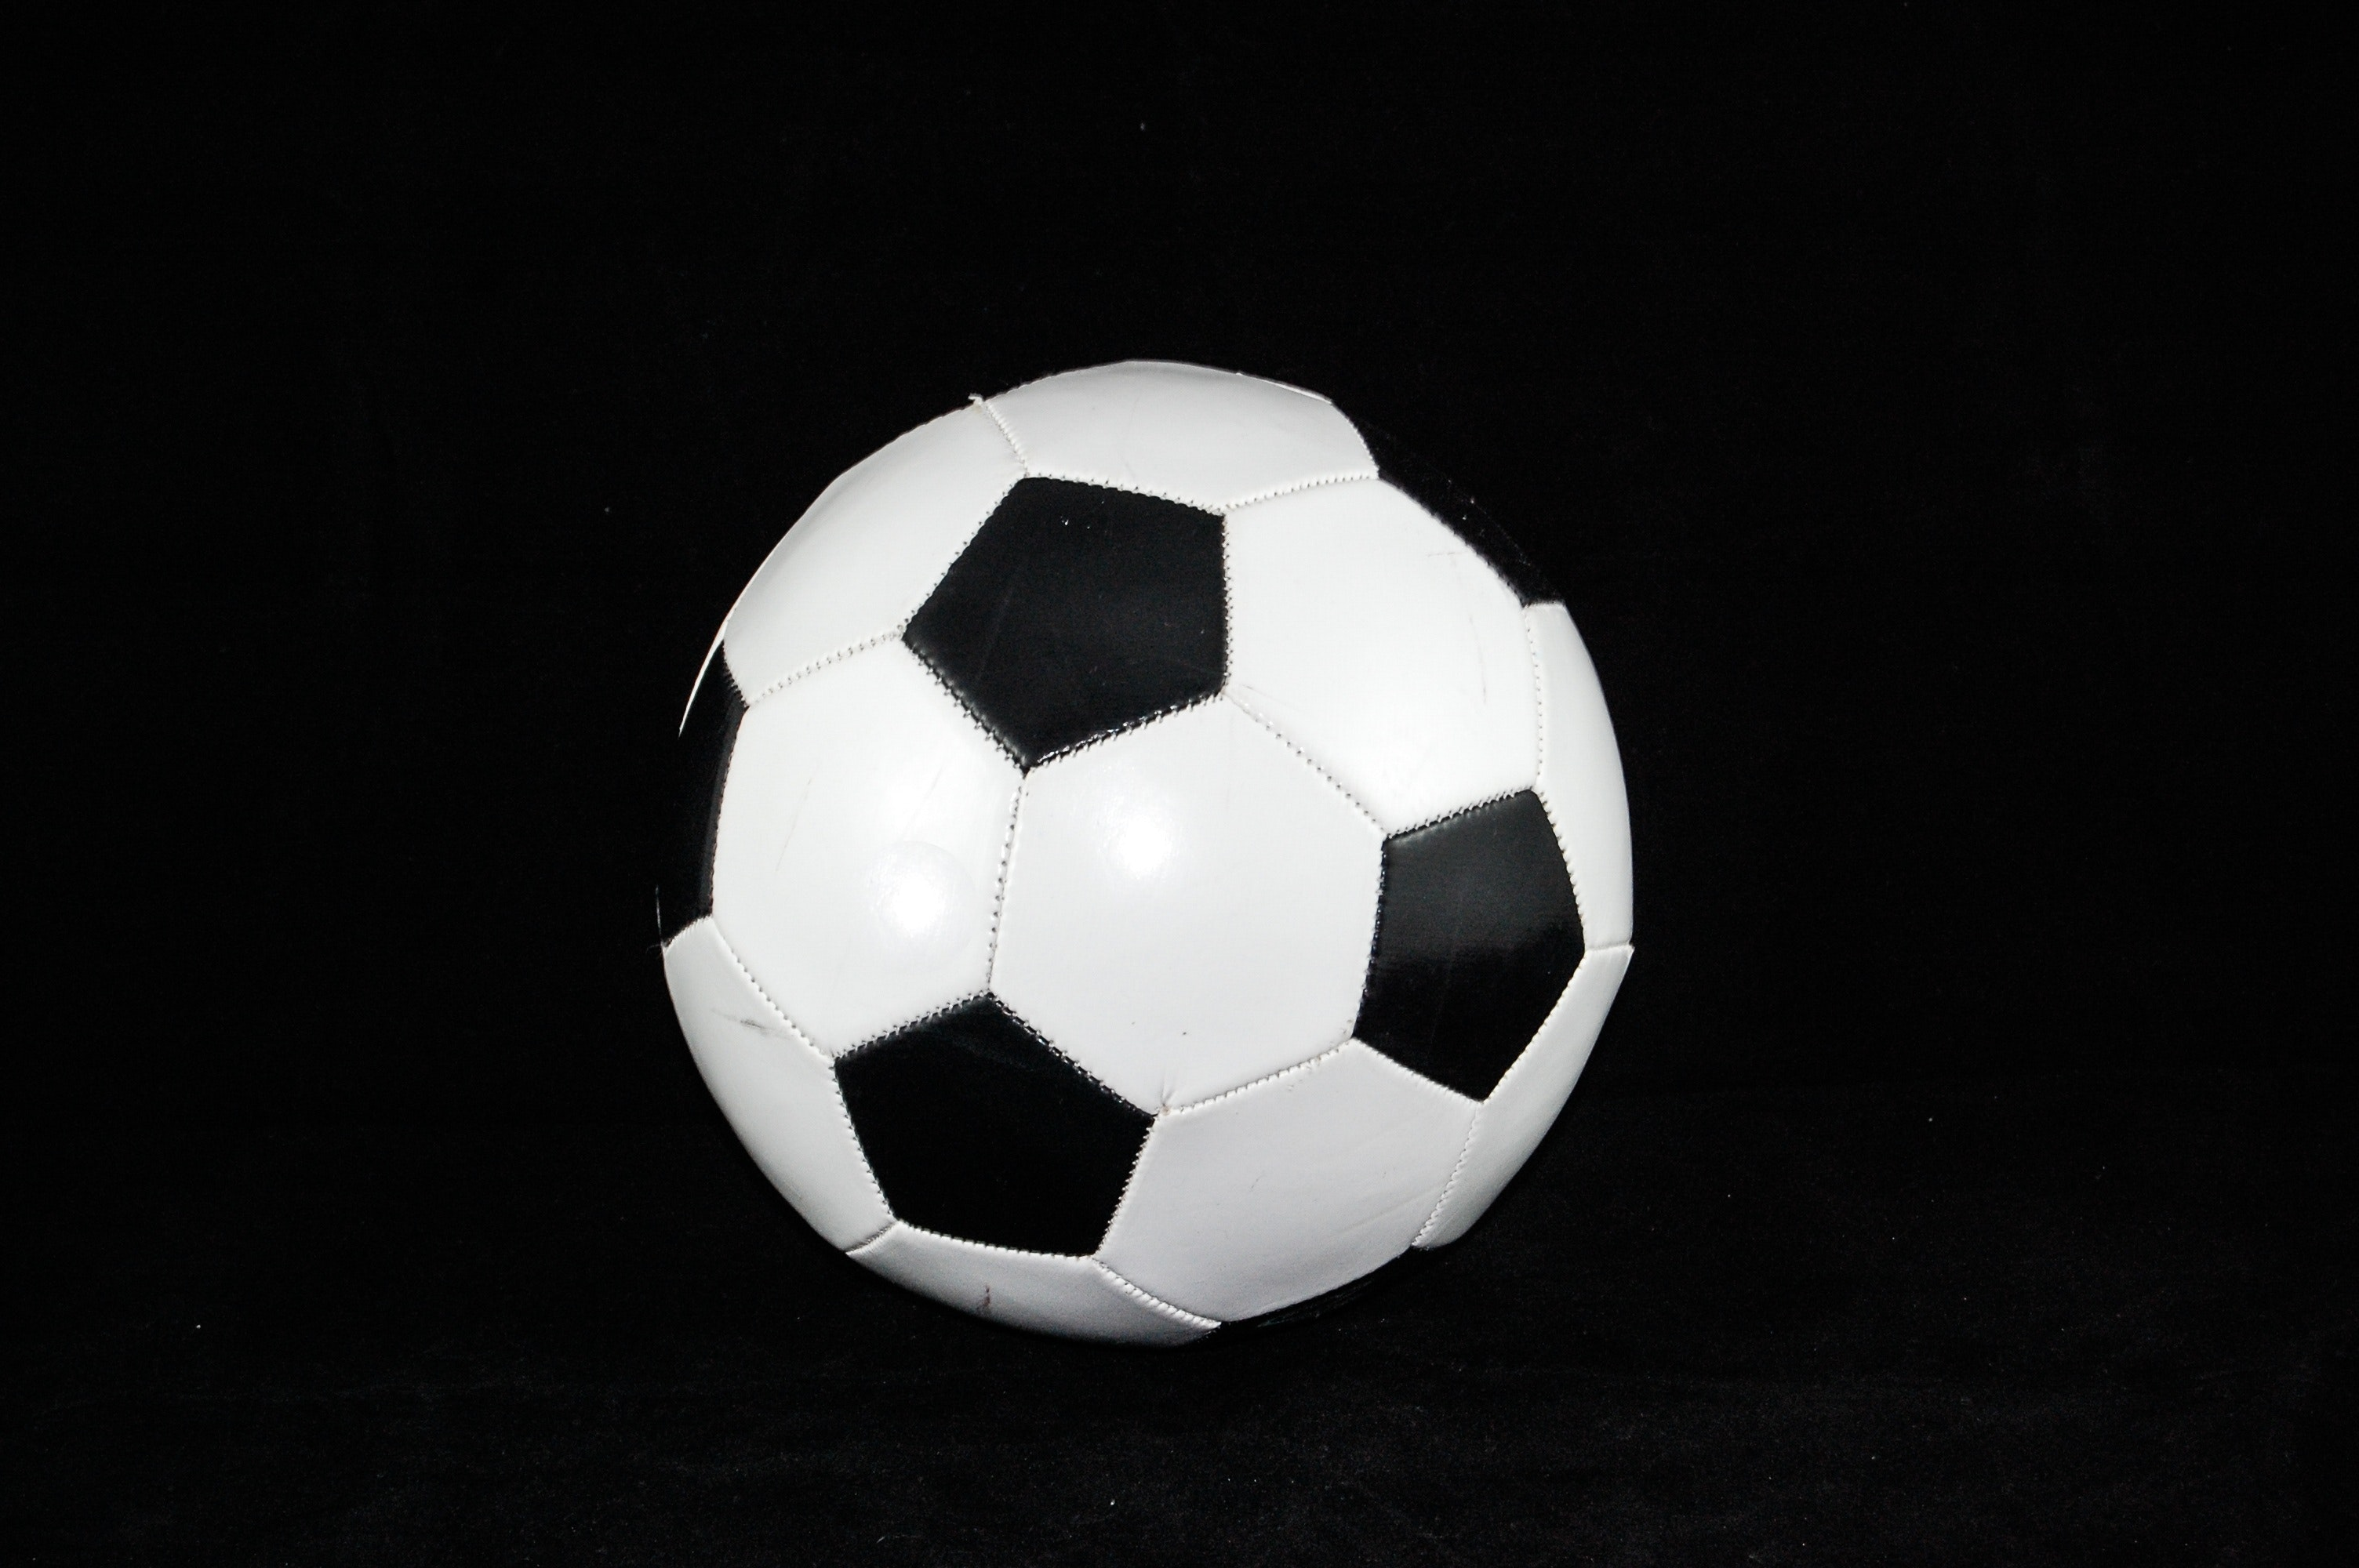 White Soccer Ball, Sport, Soccer images, Soccer ball, Football, HQ Photo